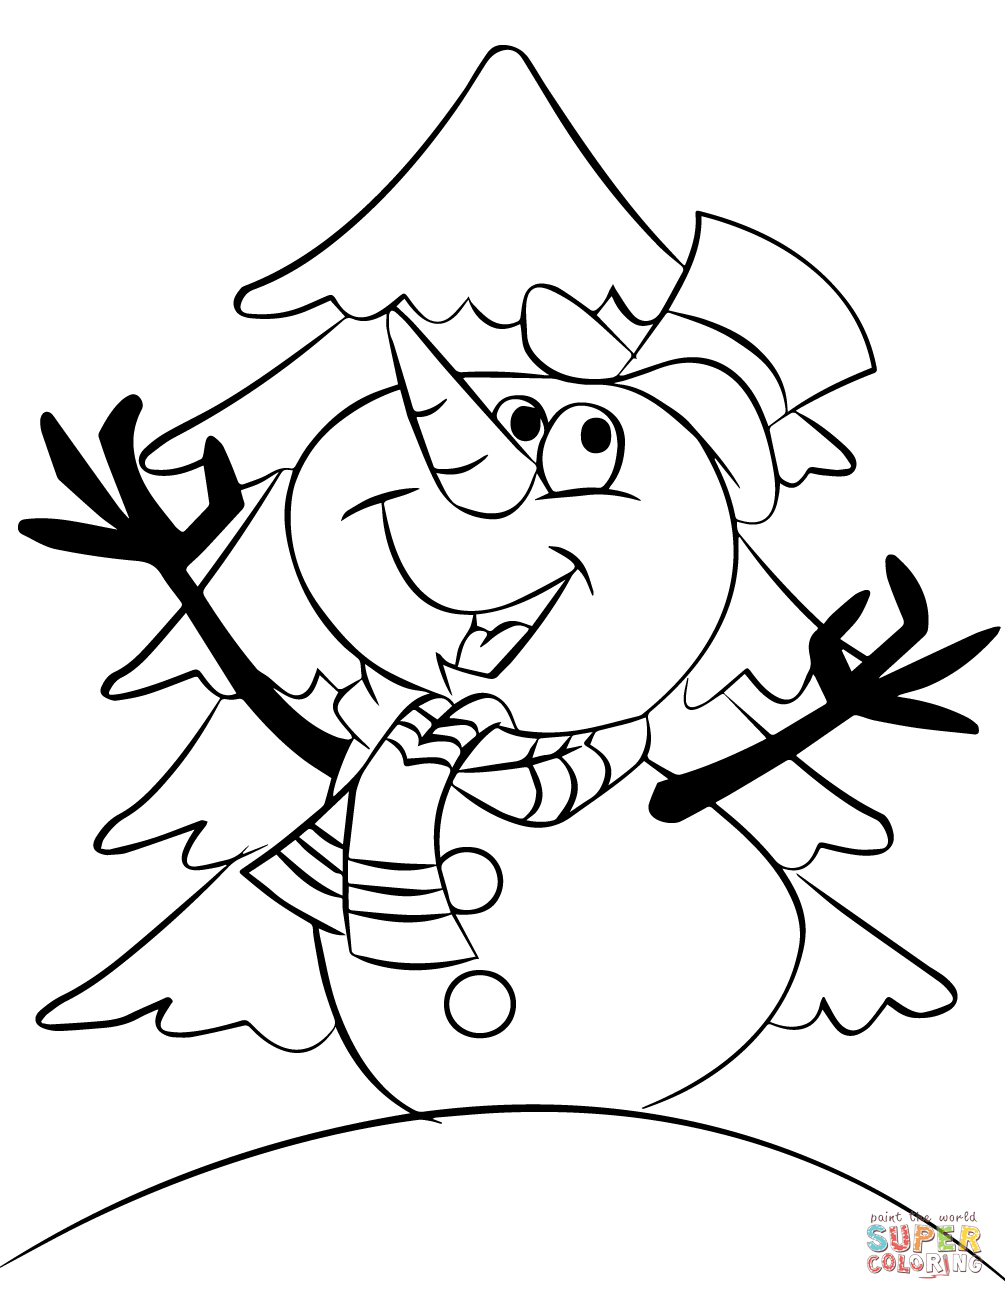 snowman color page blank snowman coloring pages at getcoloringscom free snowman page color